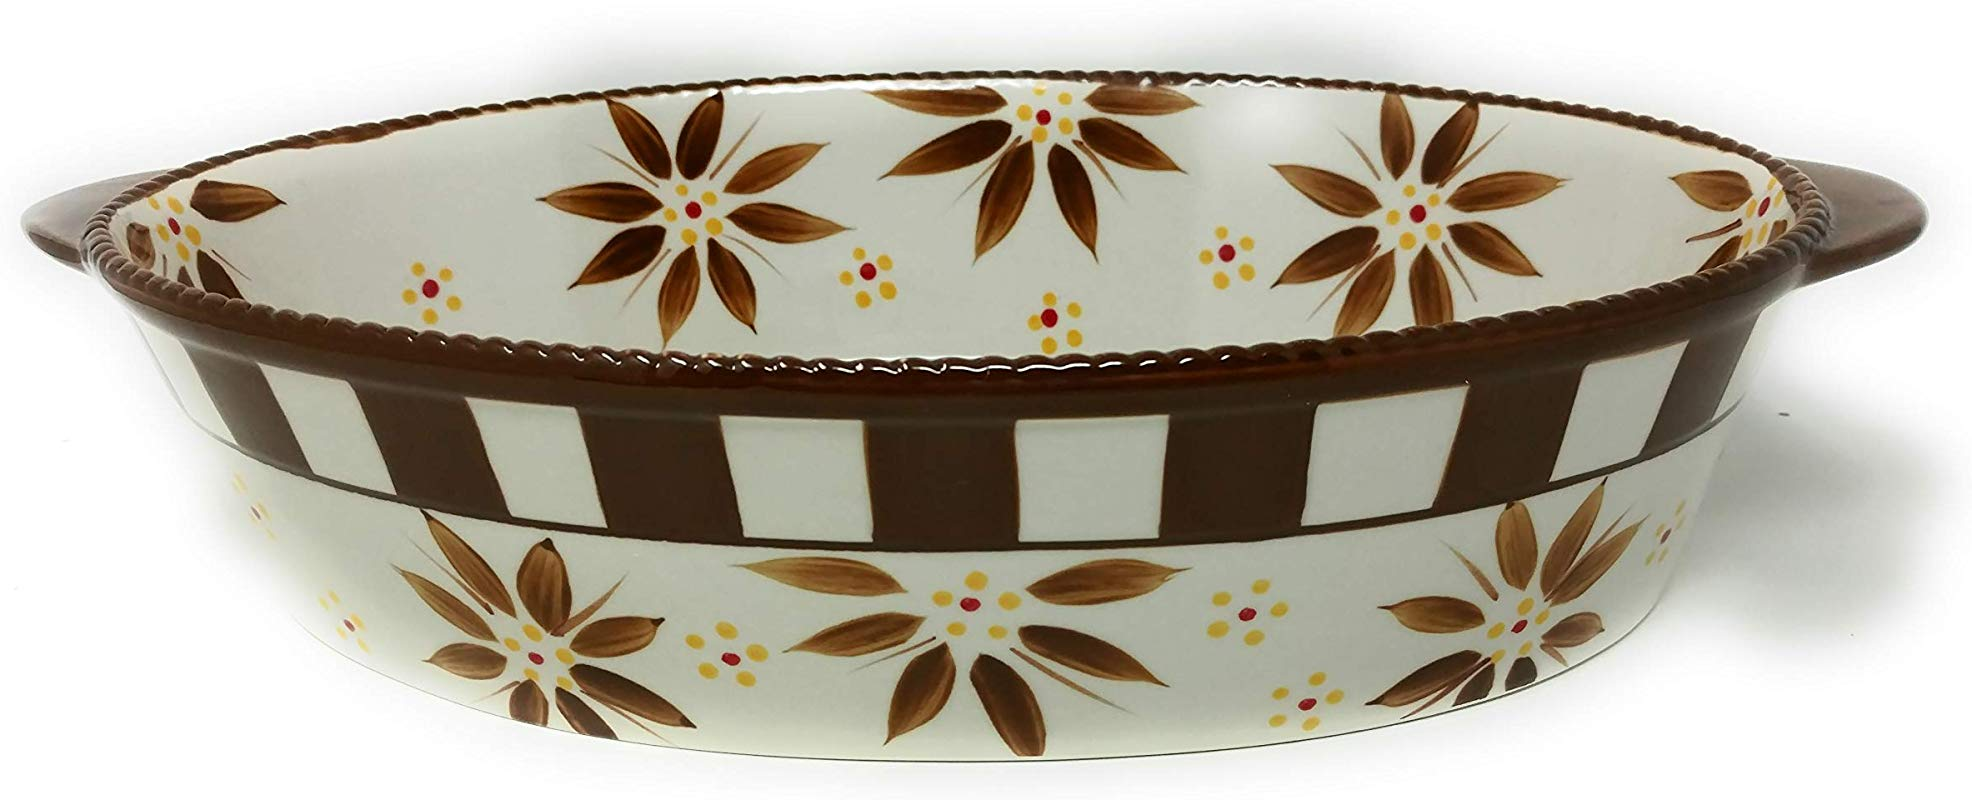 Temp Tations 3 Qt Oval Baker With Plastic Cover Old World Brown